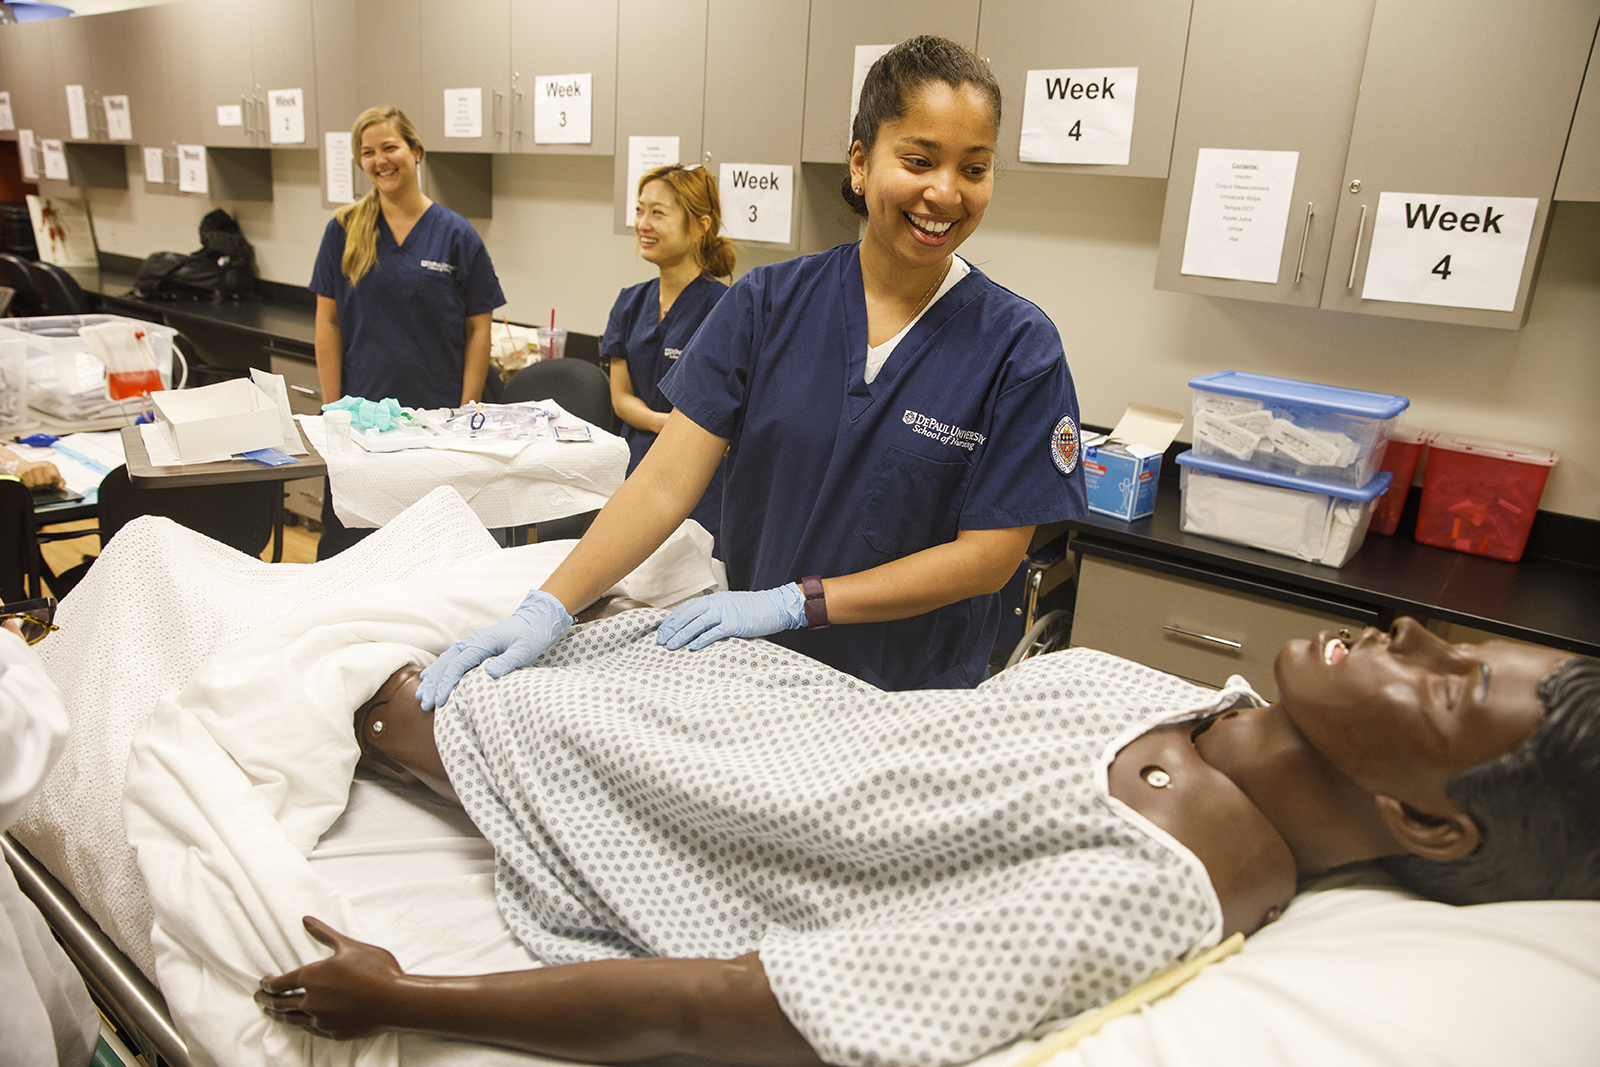 Stacy Gates, MENP student and veteran of the Army National Guard, prepares to assess a patient in the simulation lab.